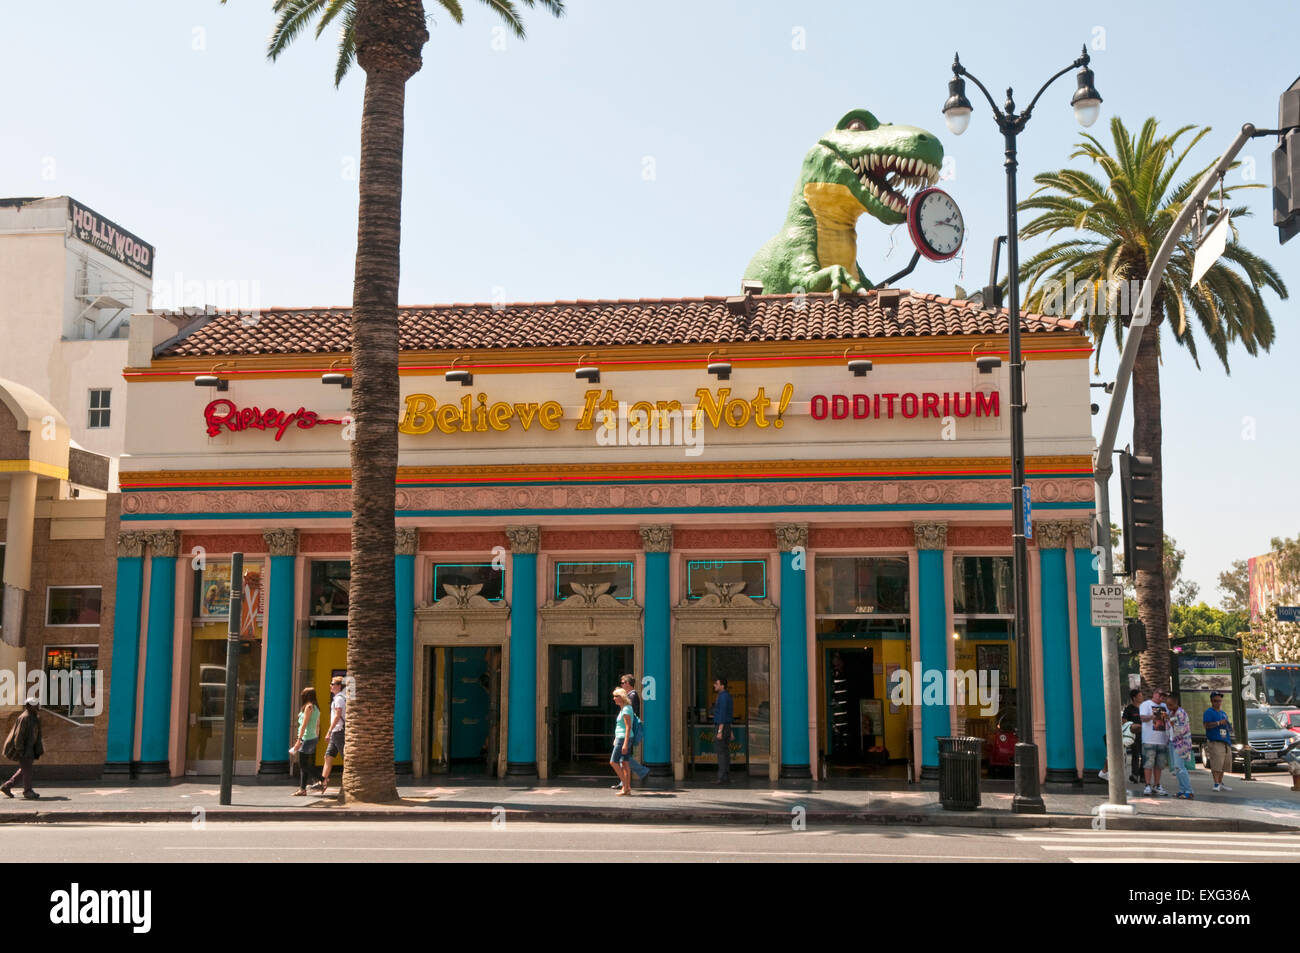 Ripley's Believe It or Not! Odditorium on Hollywood Boulevard, Los Angeles, California, USA - Stock Image